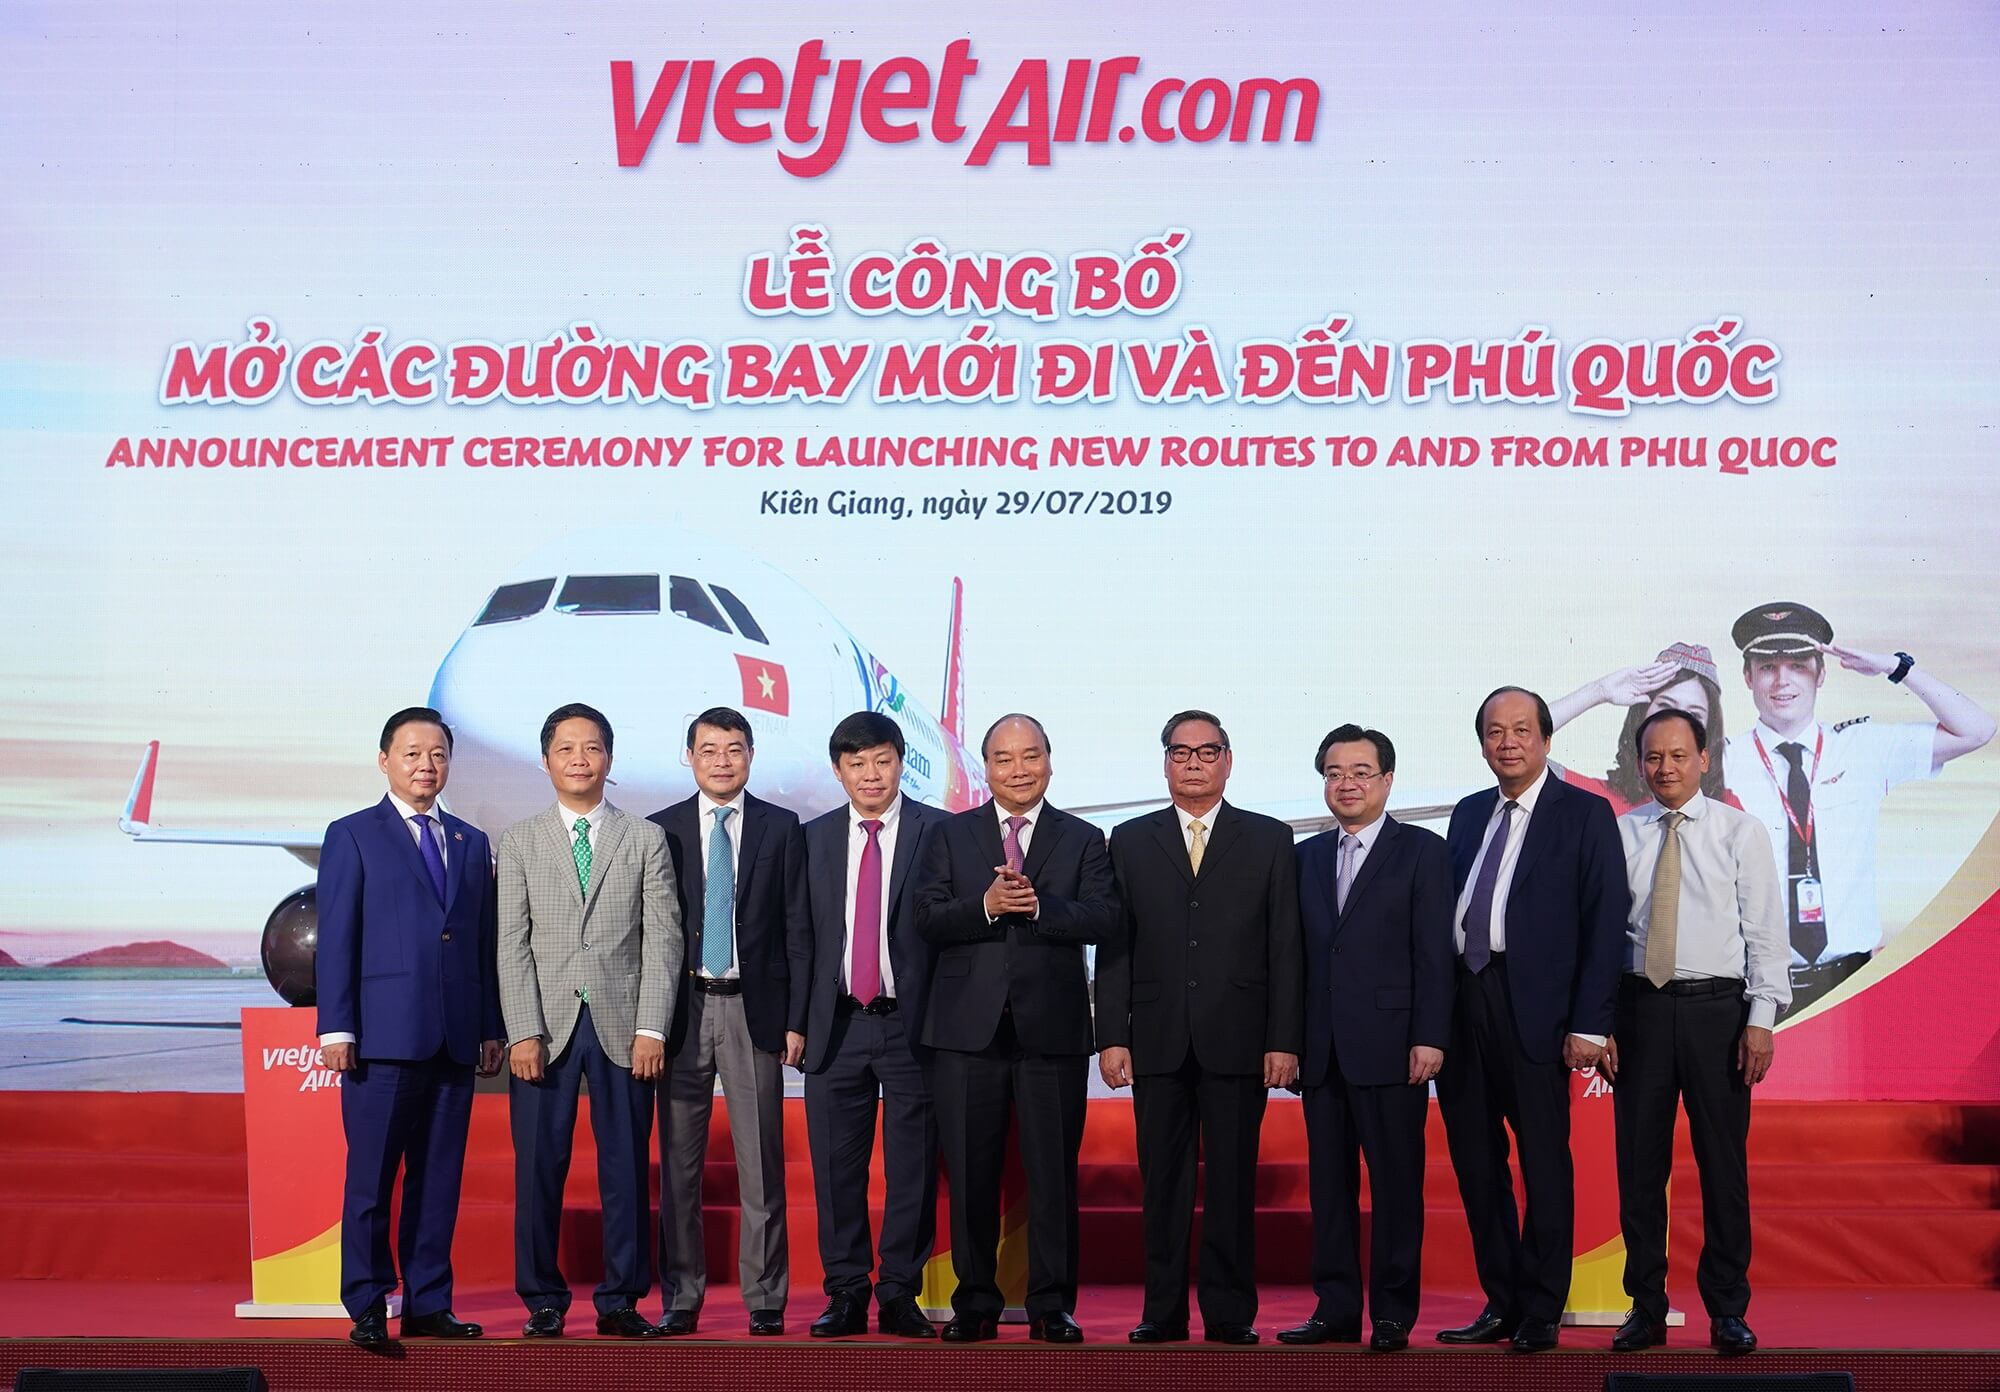 Vietjet increases flight frequencies to Phu Quoc island